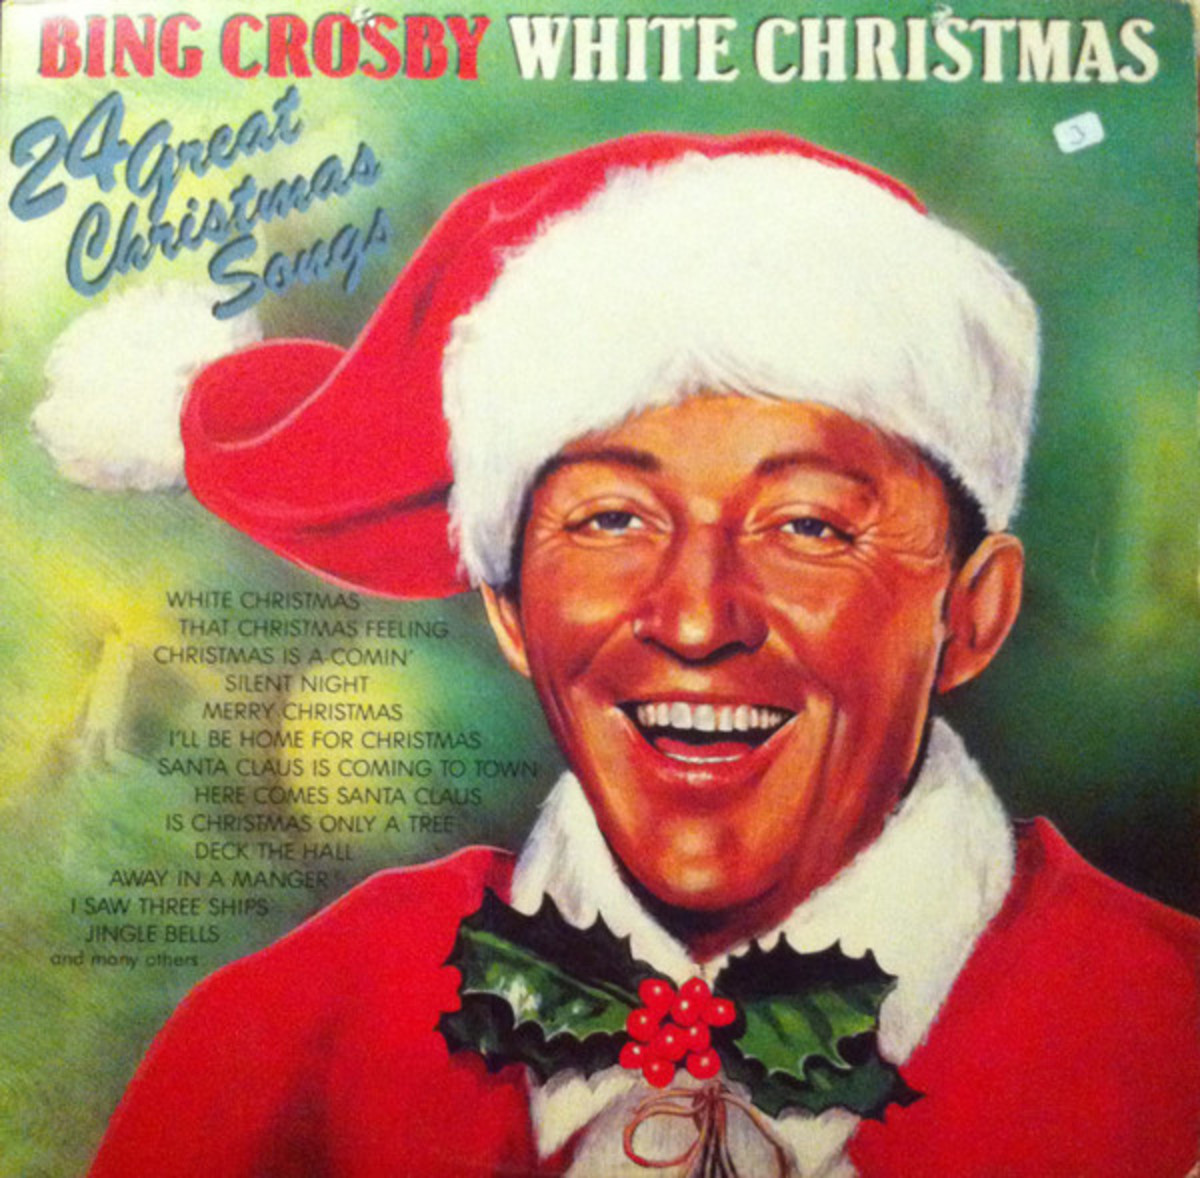 These are some of the Best-Selling Christmas Albums Through the Decades